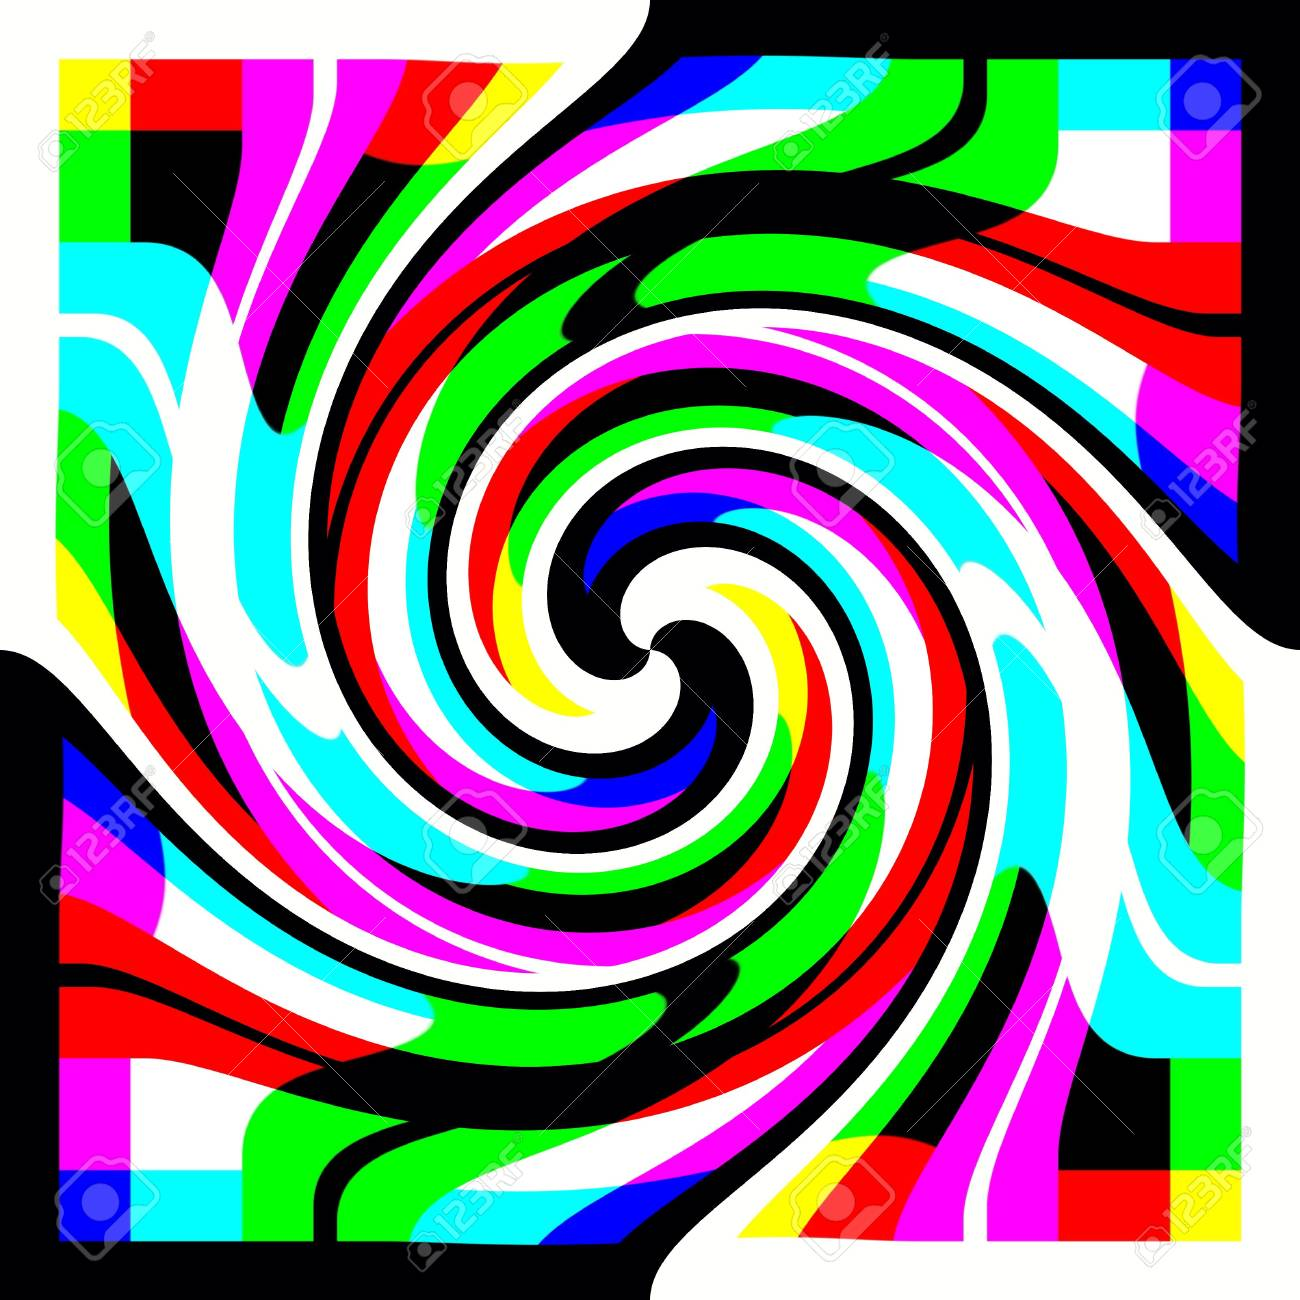 7dcc3ae36a Multicolor Spiral For Design Stock Photo, Picture And Royalty Free ...